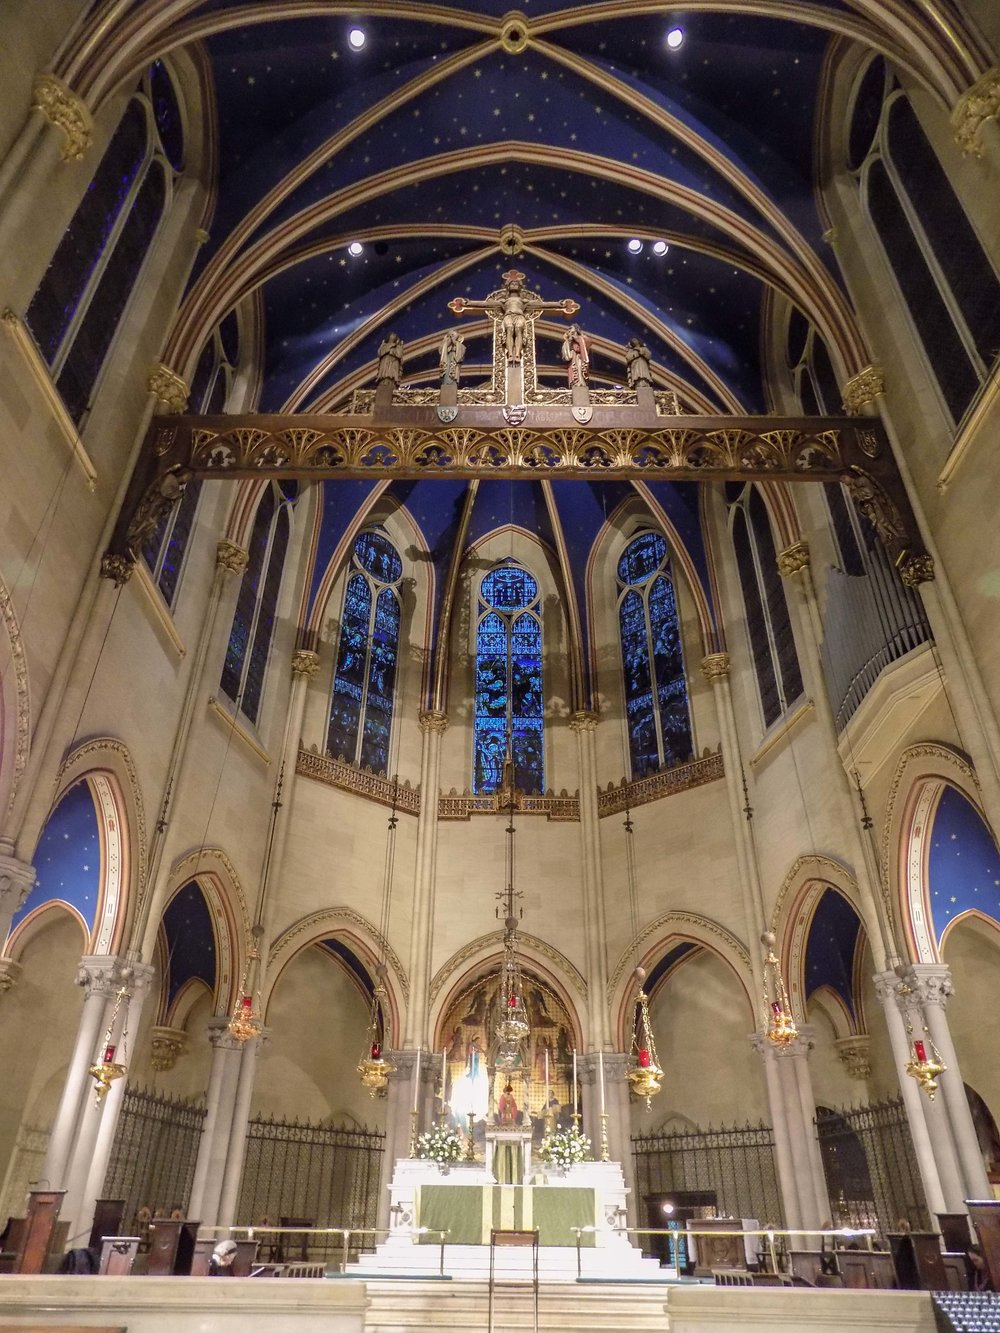 A view of the high altar and rood screen.